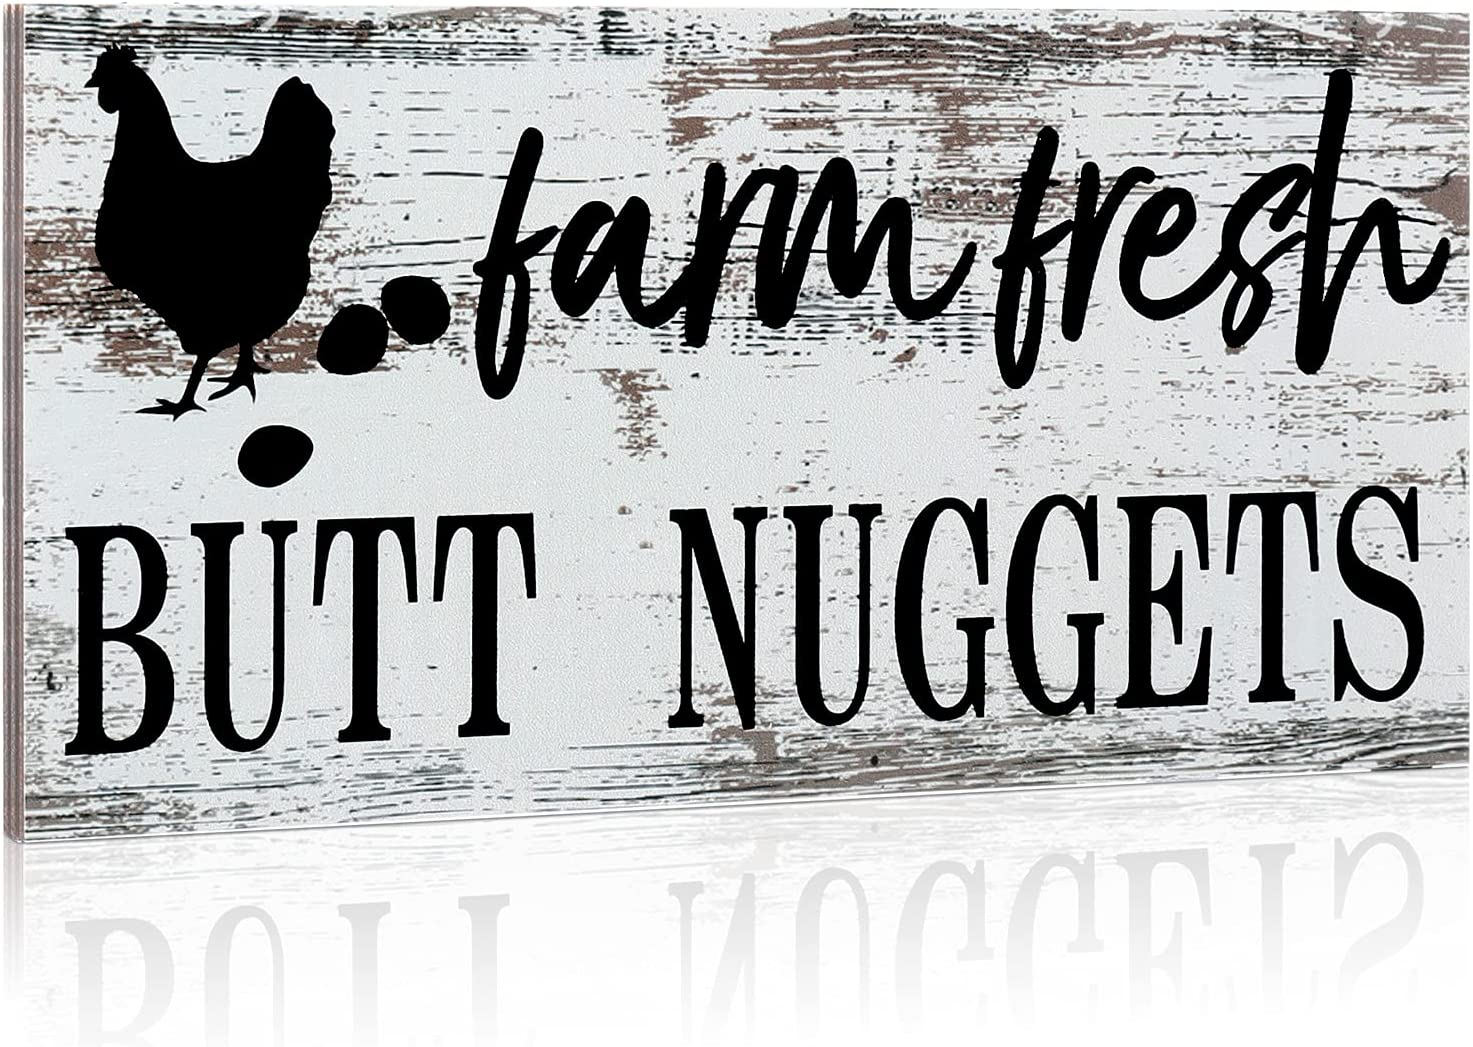 Jetec Farm Fresh Butt Nuggets Chicken Decor Wall Plaque Hanging Sign Rustic Hen House Decoration Farmhouse Wooden Wall Decoration for Home Kitchen Decoration